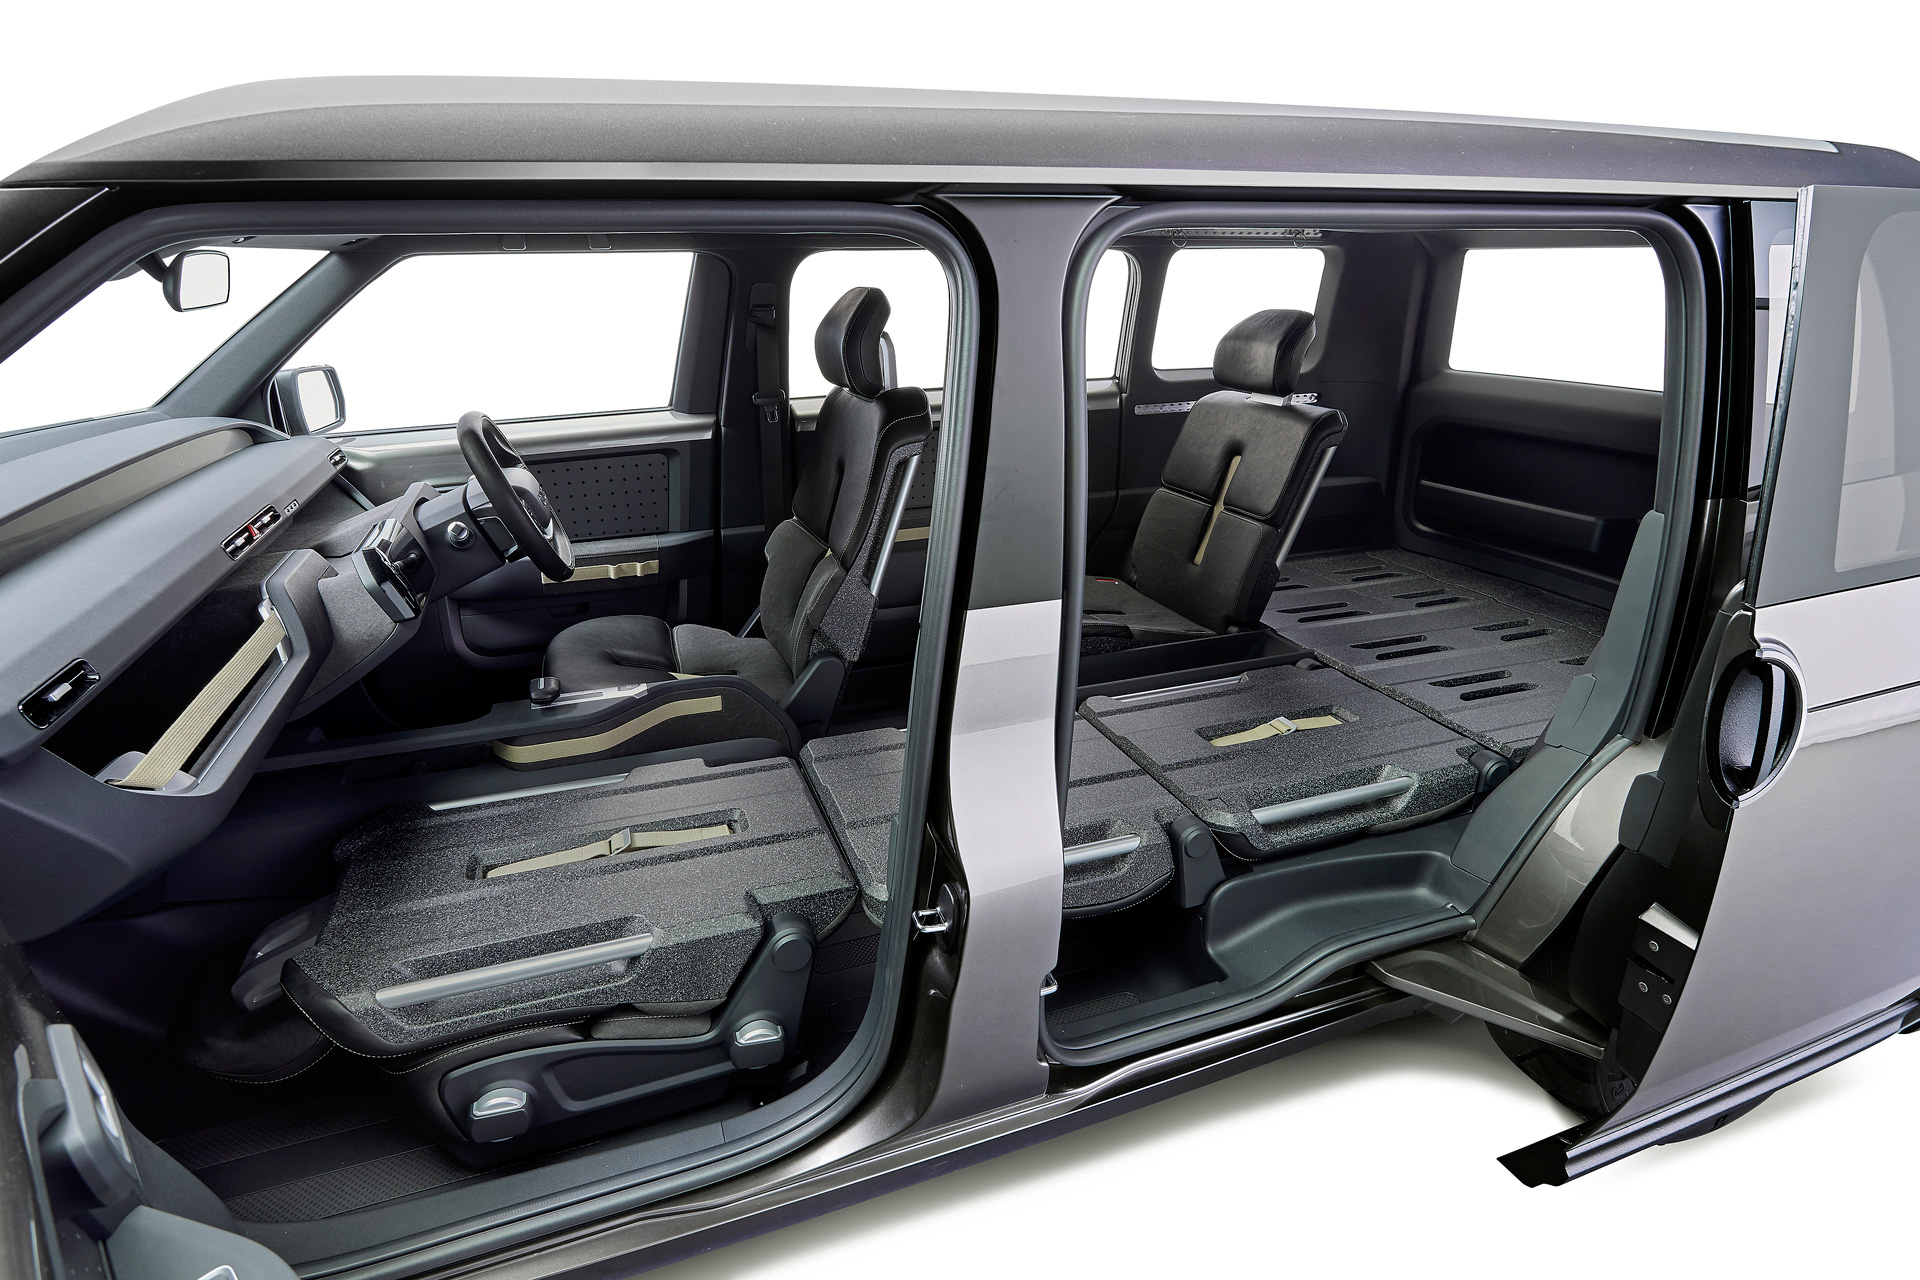 toyota tj cruiser concept le nouveau suv fourgon hybride. Black Bedroom Furniture Sets. Home Design Ideas